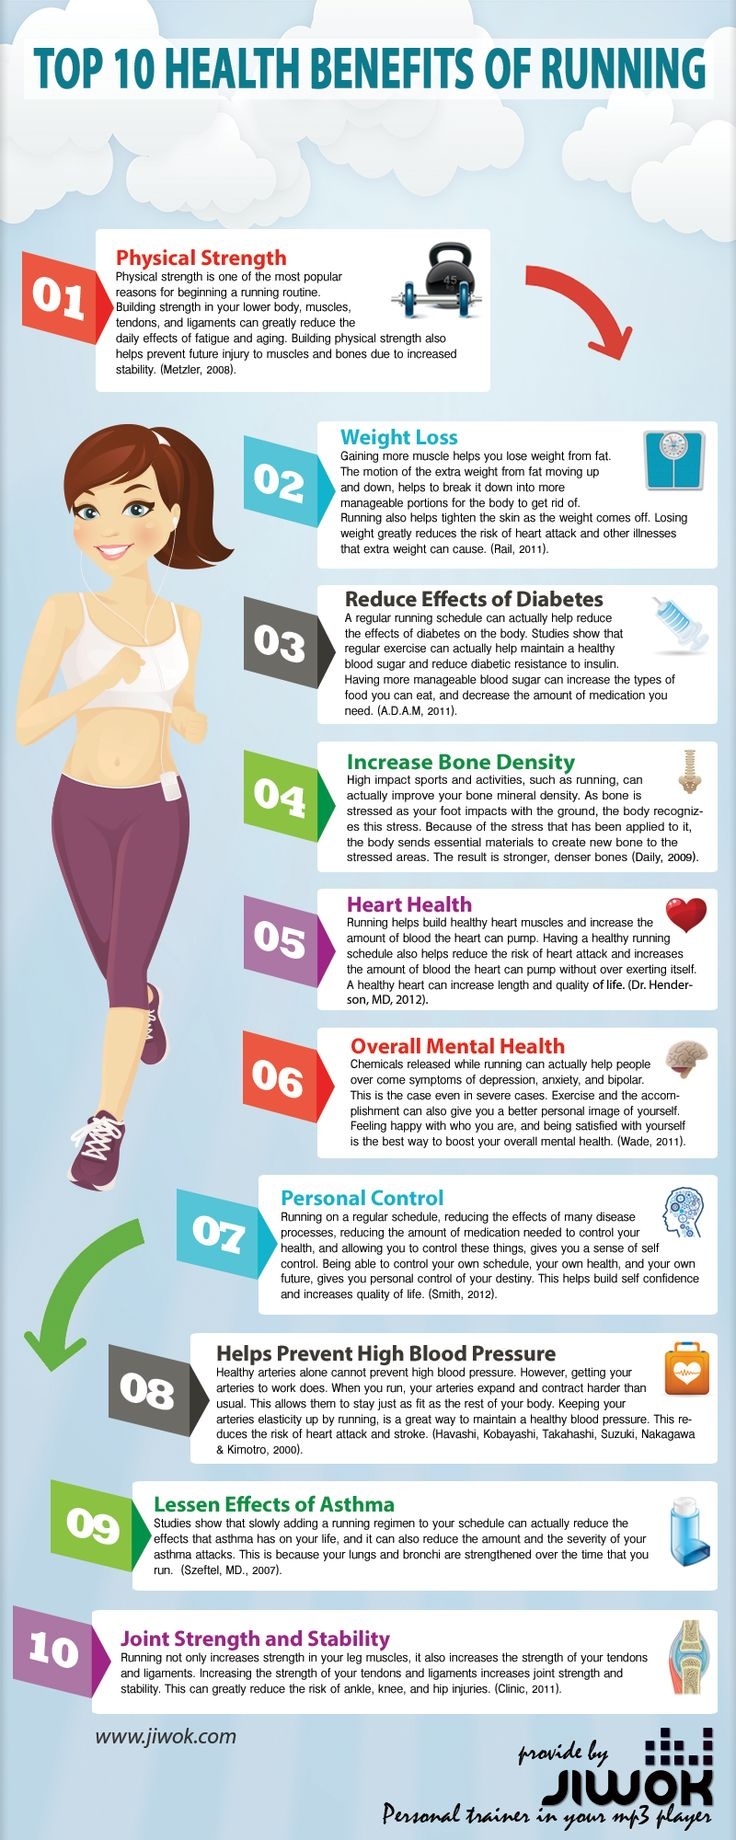 "***Top 10 Health Benefits of Running *** ""Top 10 running benefits from running that will improve your health and keep you feeling young. Indeed, Top Ten Running major health benefits from general stress relief, quality of live increased , to weight loss, to preventing bone loss.... Learn more here: http://www.jiwok.com/ Enjoy!"""